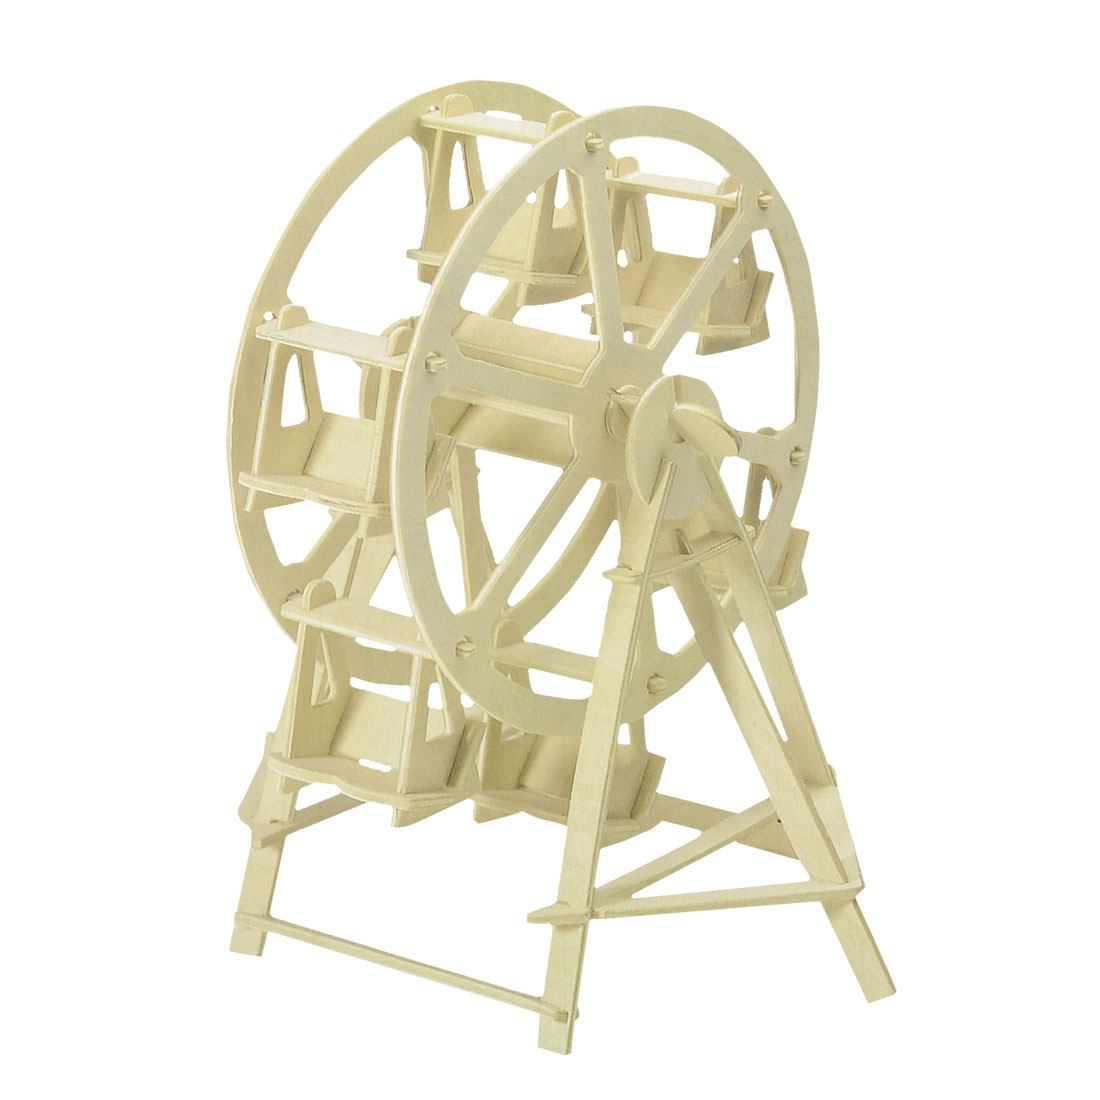 Child Educational DIY Assembly 3D Ferris Wheel Woodcraft Construction Puzzle Toy